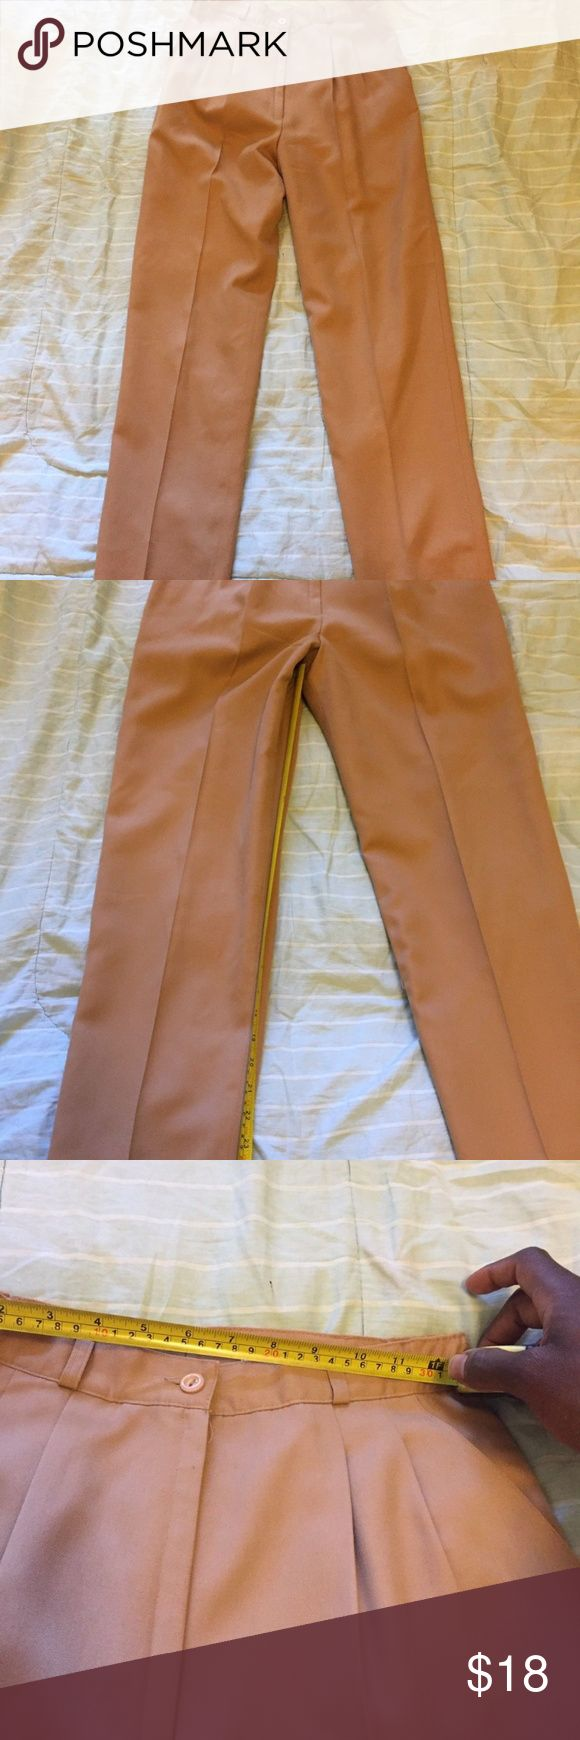 Women's Bassonova Dress Pant Slacks Size 6 Taupe This listing is for a pair of Bassonova dress slacks for women in a size 6. These pants are an all over Taupe color with side pockets and belt loops. Can go great with a simplistic combination for work or for a night out. No tears, rips or stains. It is in like new condition. Do not miss out on such an attractive offer Bassonova Pants Trousers